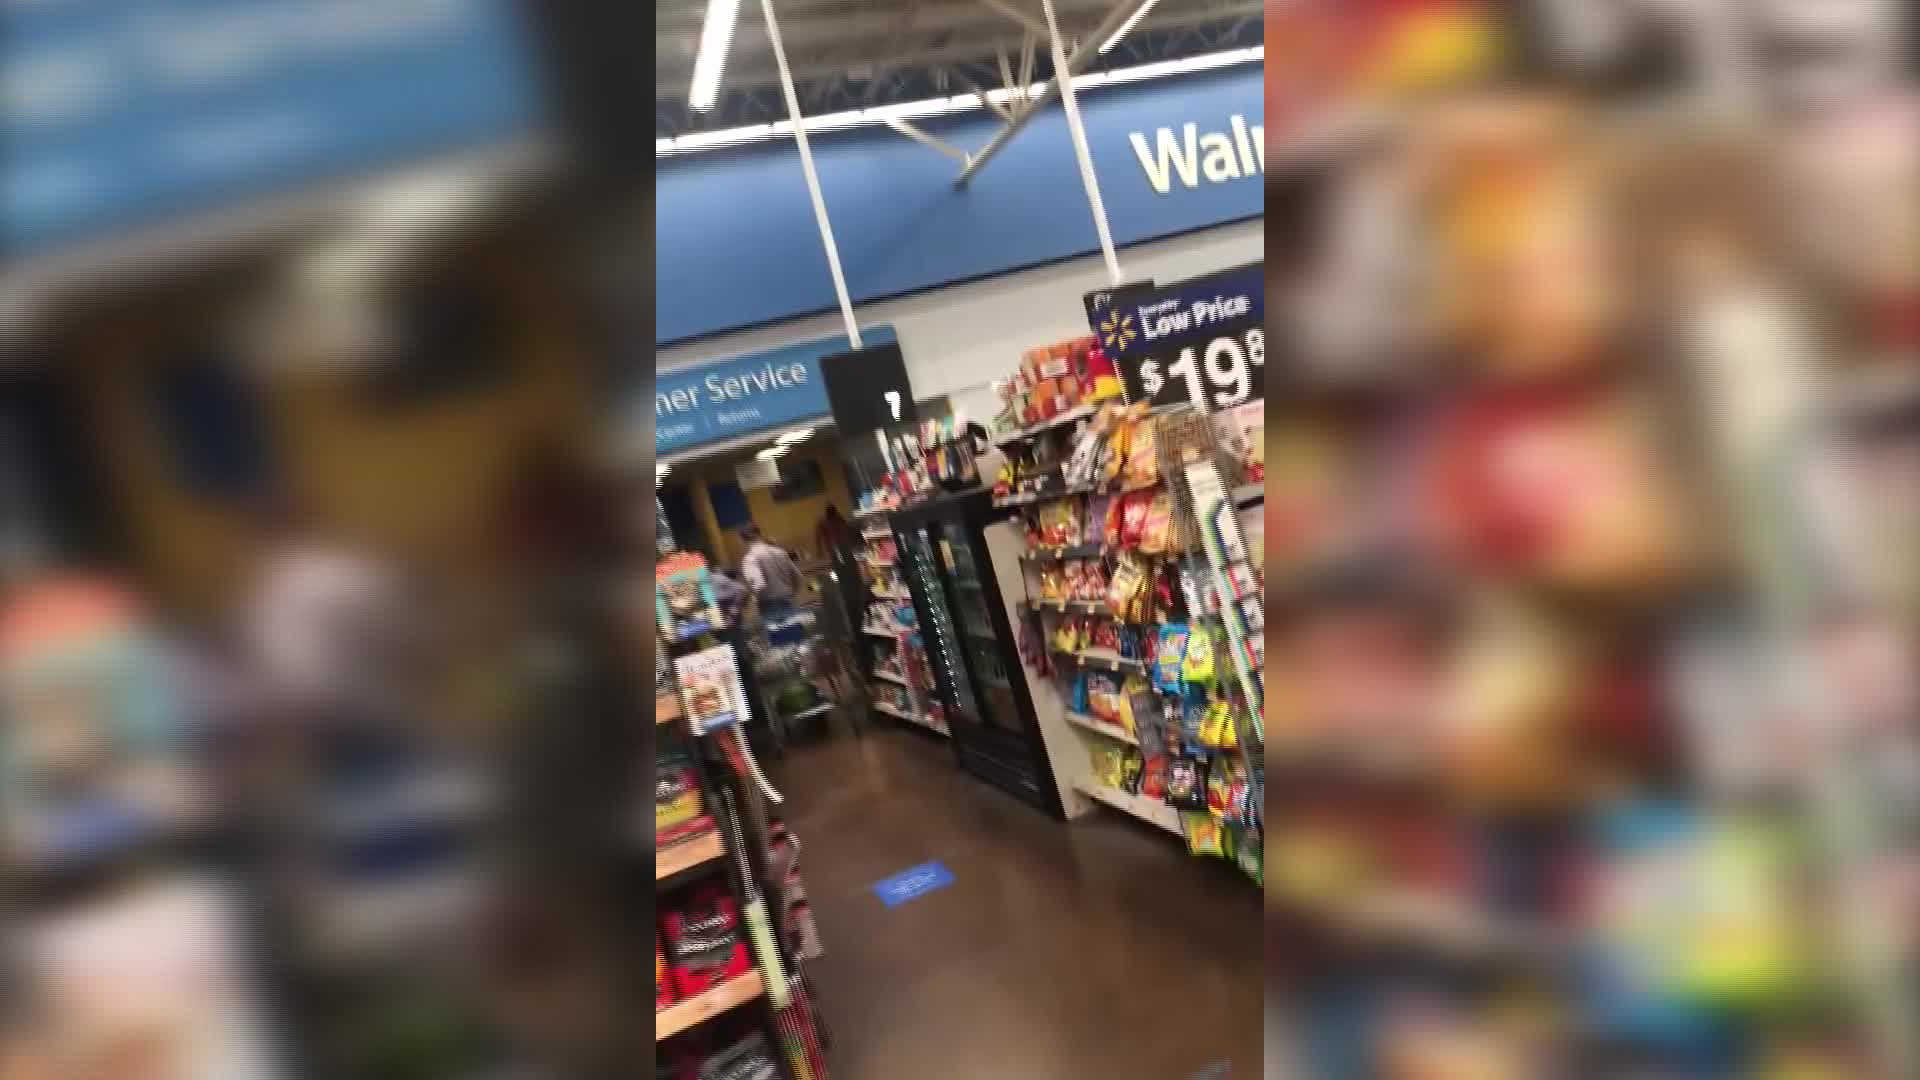 Half-naked man caught on video punching 72-year-old Walmart employee, police say